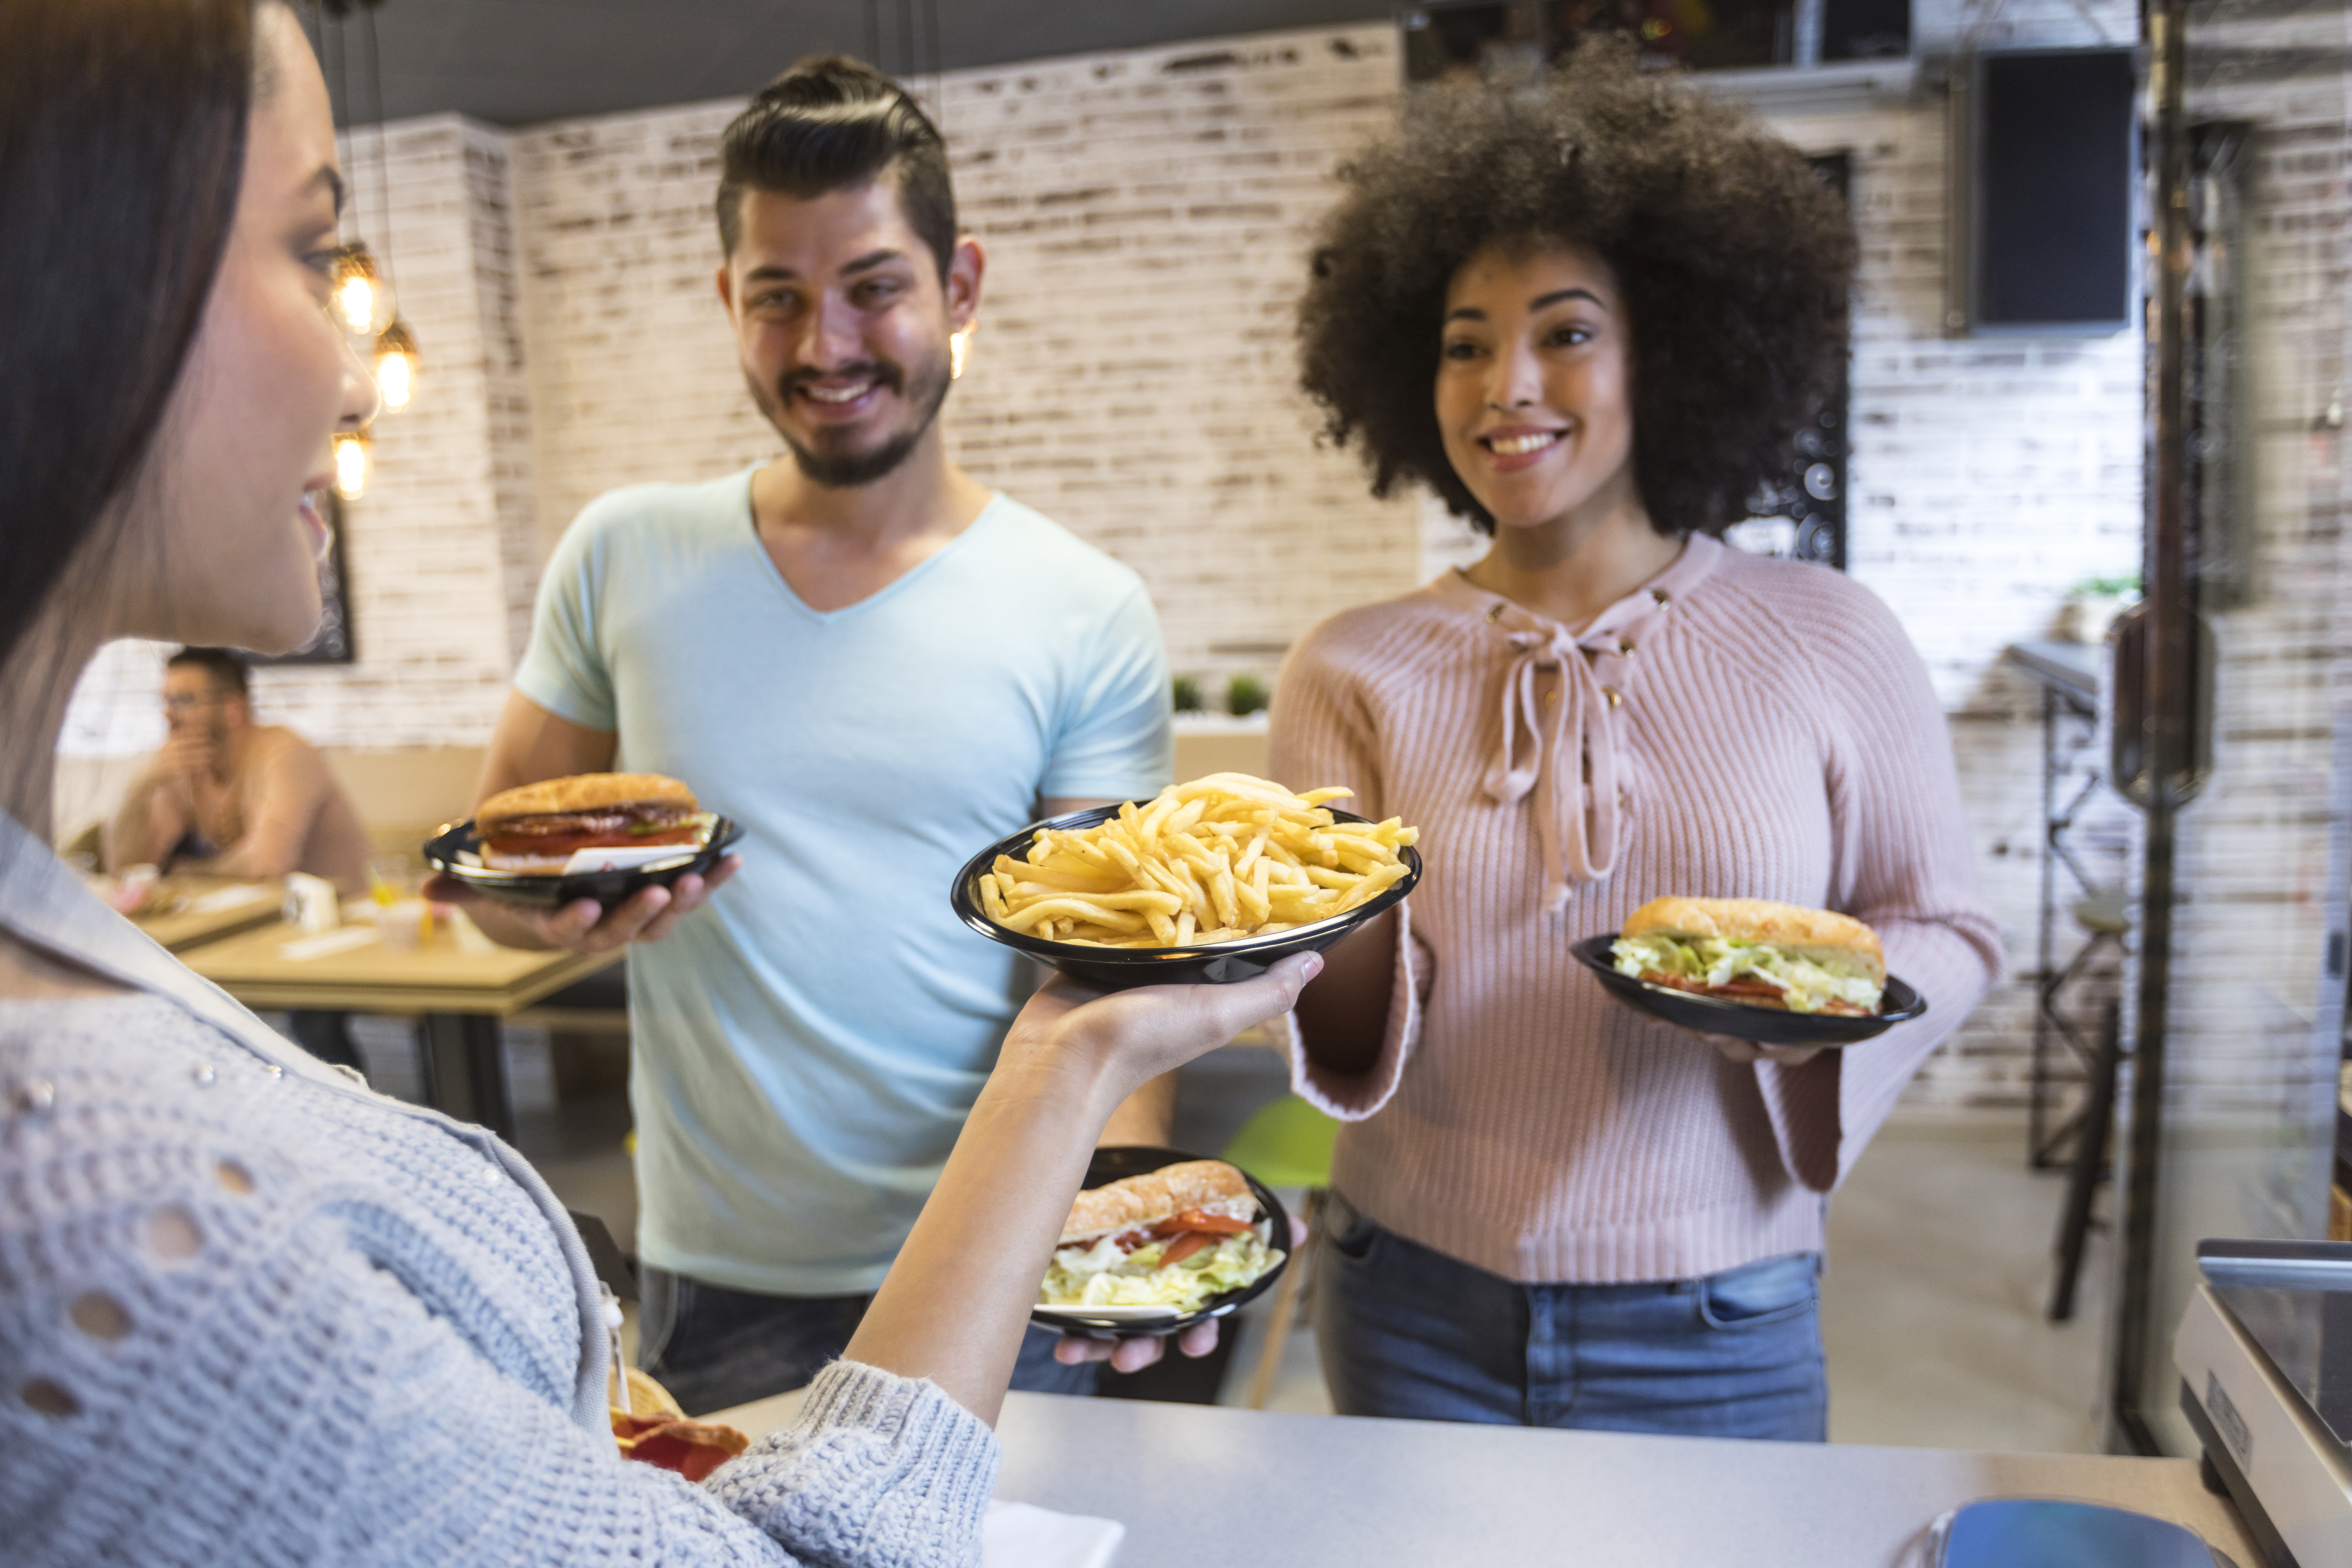 Couple-in-fast-food-restaurant-buying-burgers-937358382_6720x4480